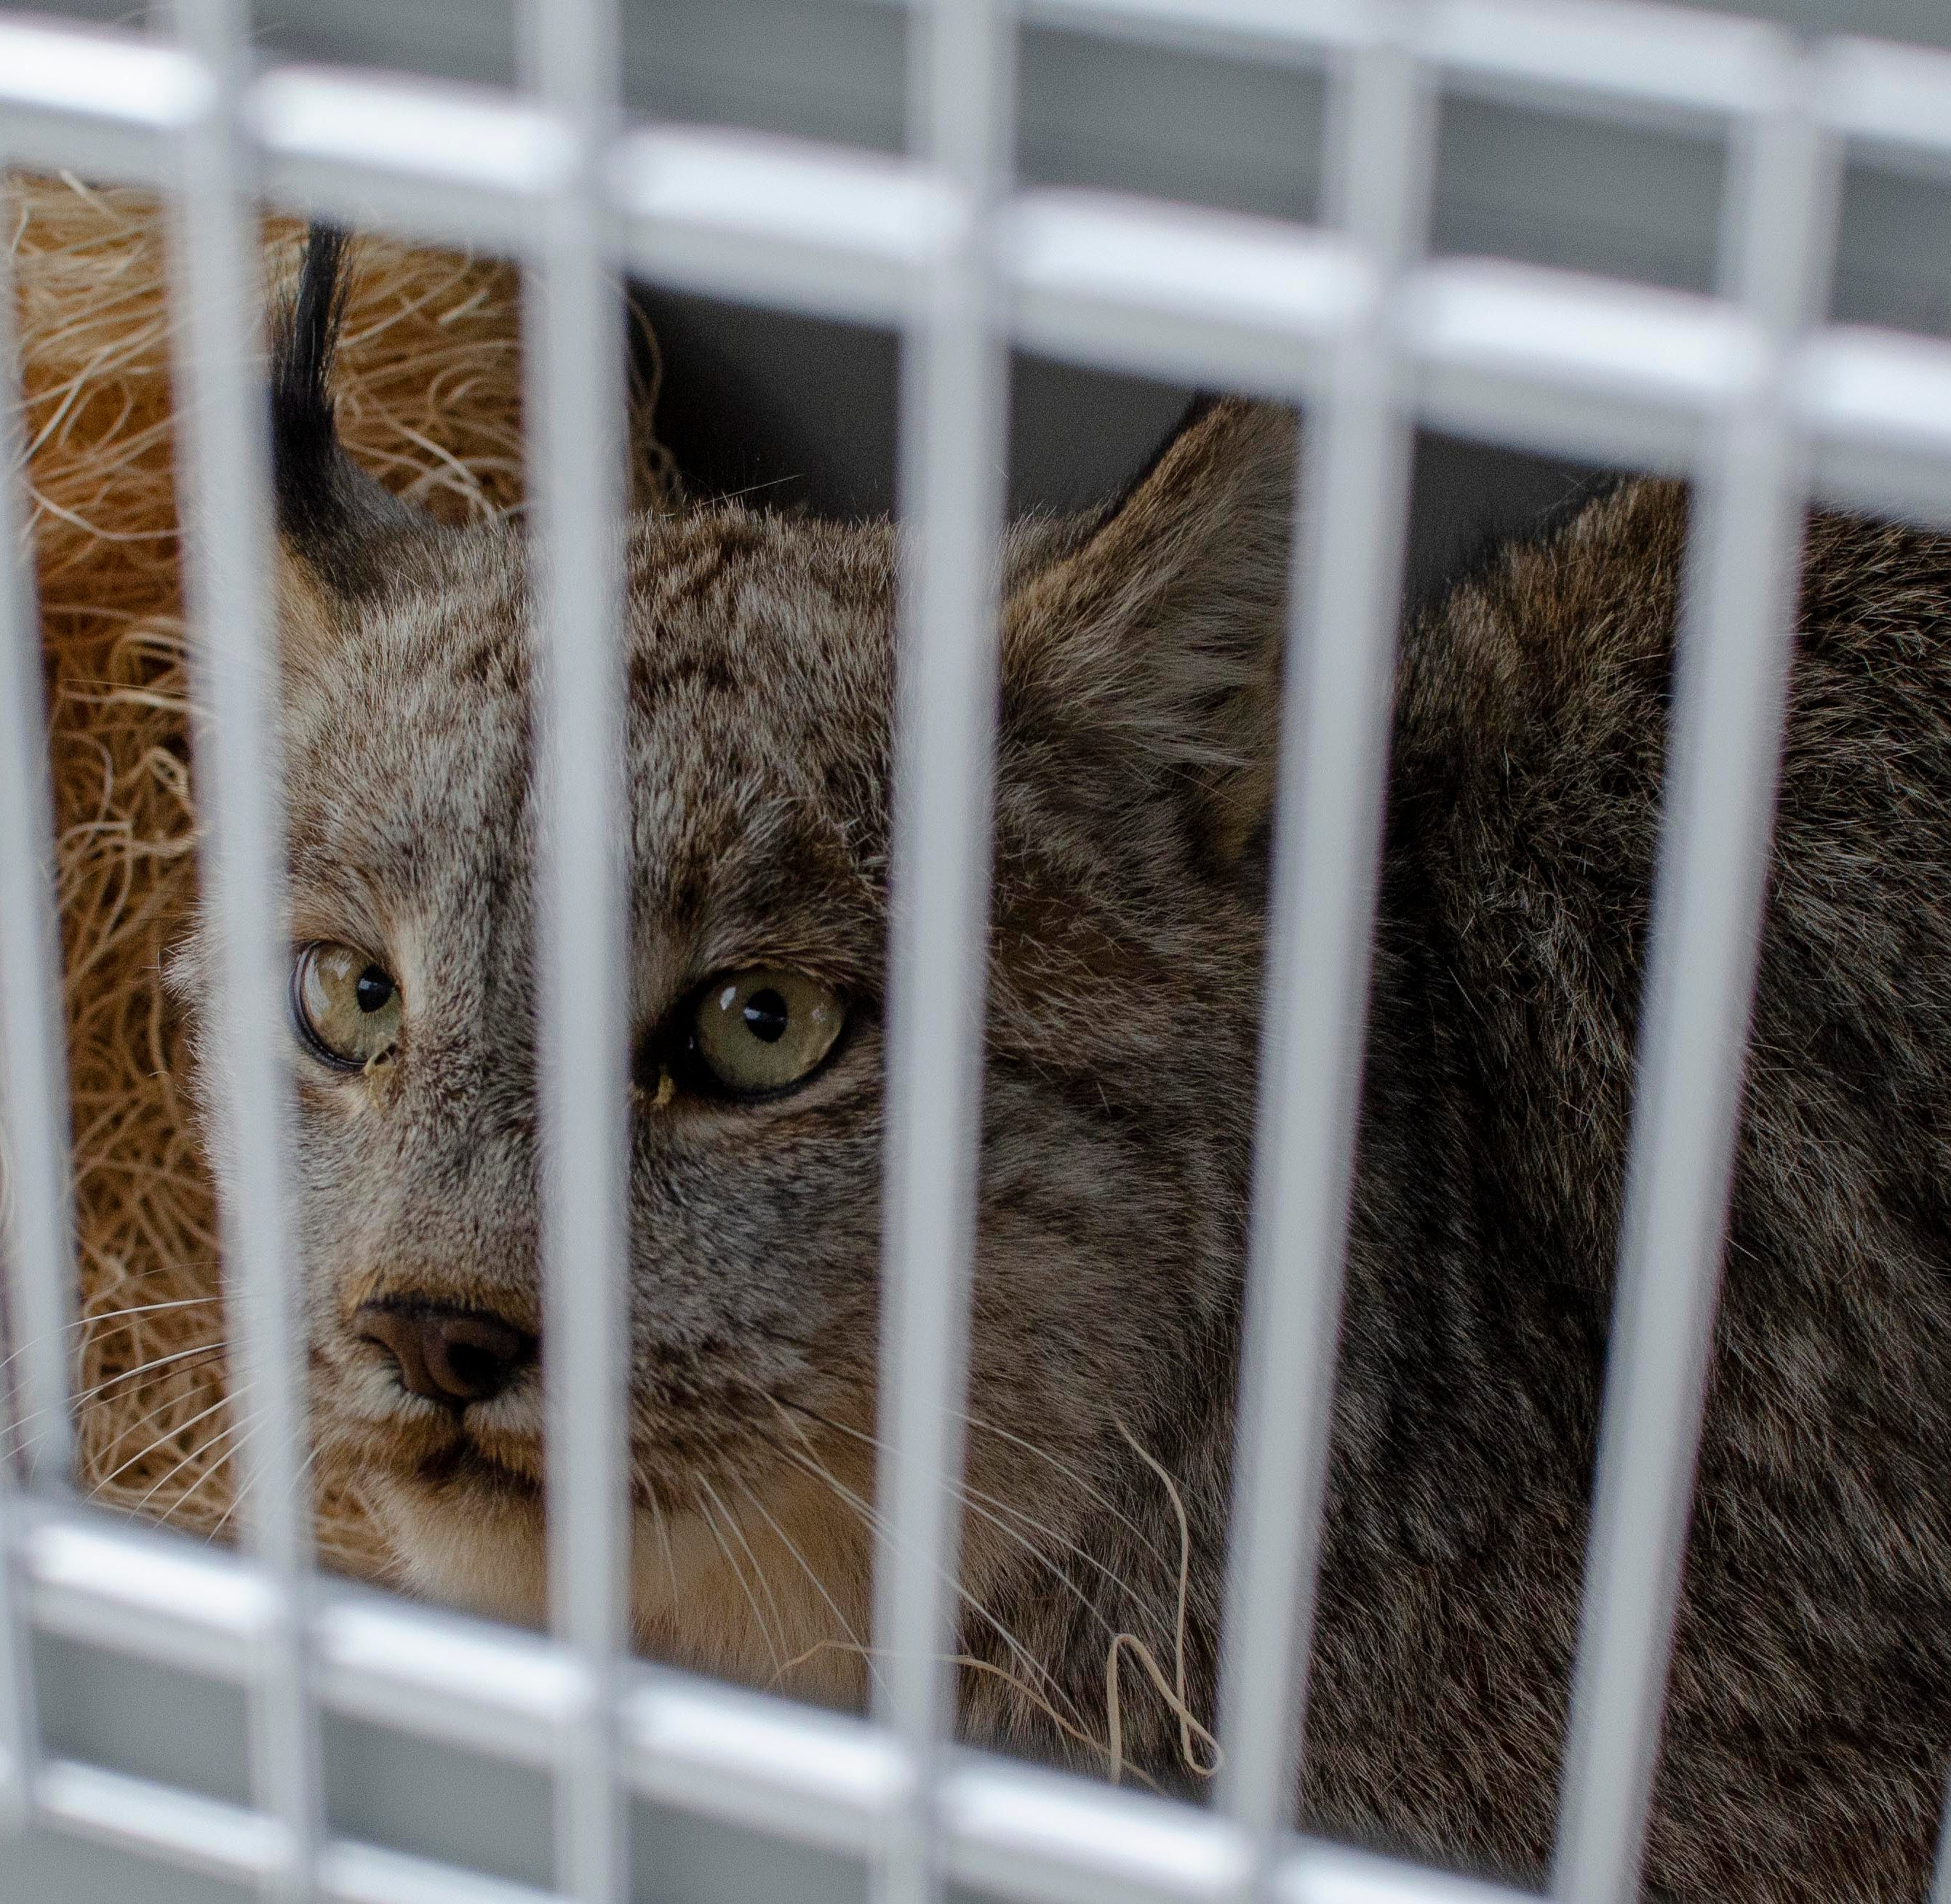 Rare lynx caught in Michigan released in U.P.